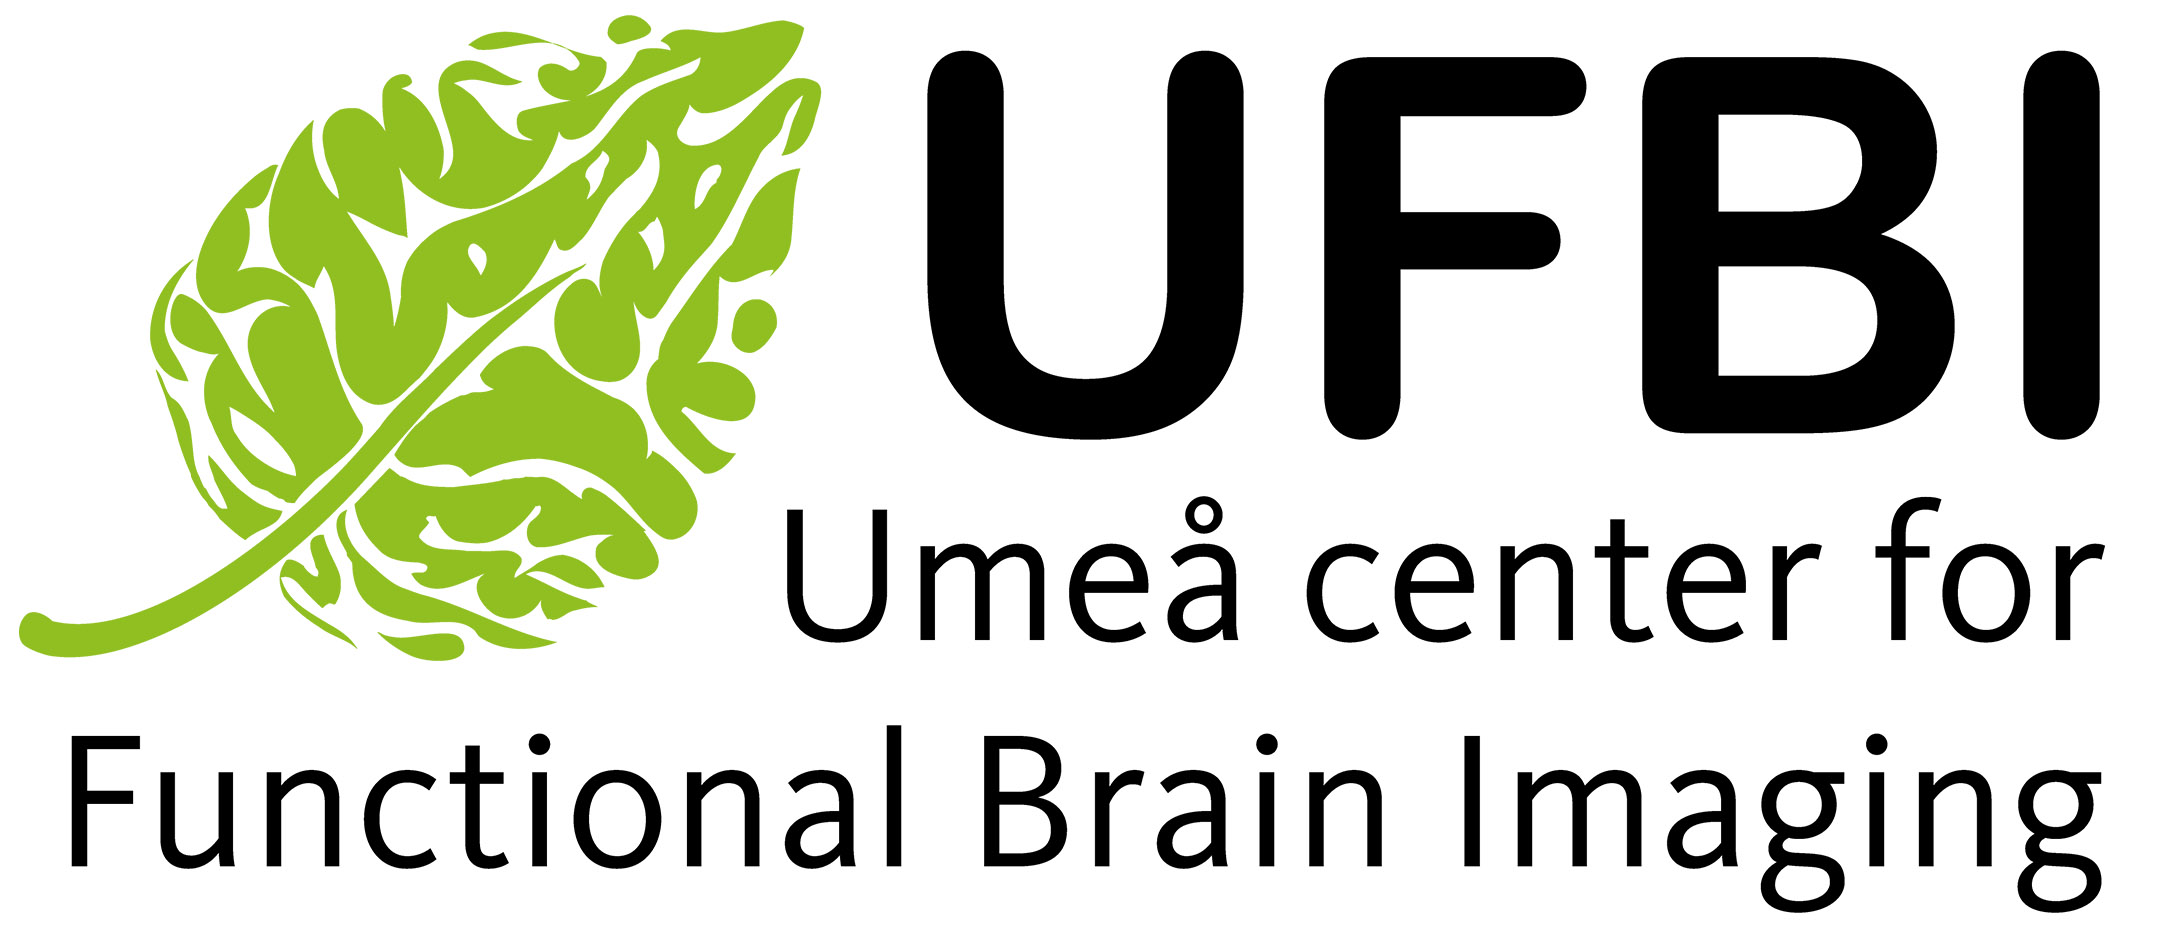 Umeå center for functional brain imaging